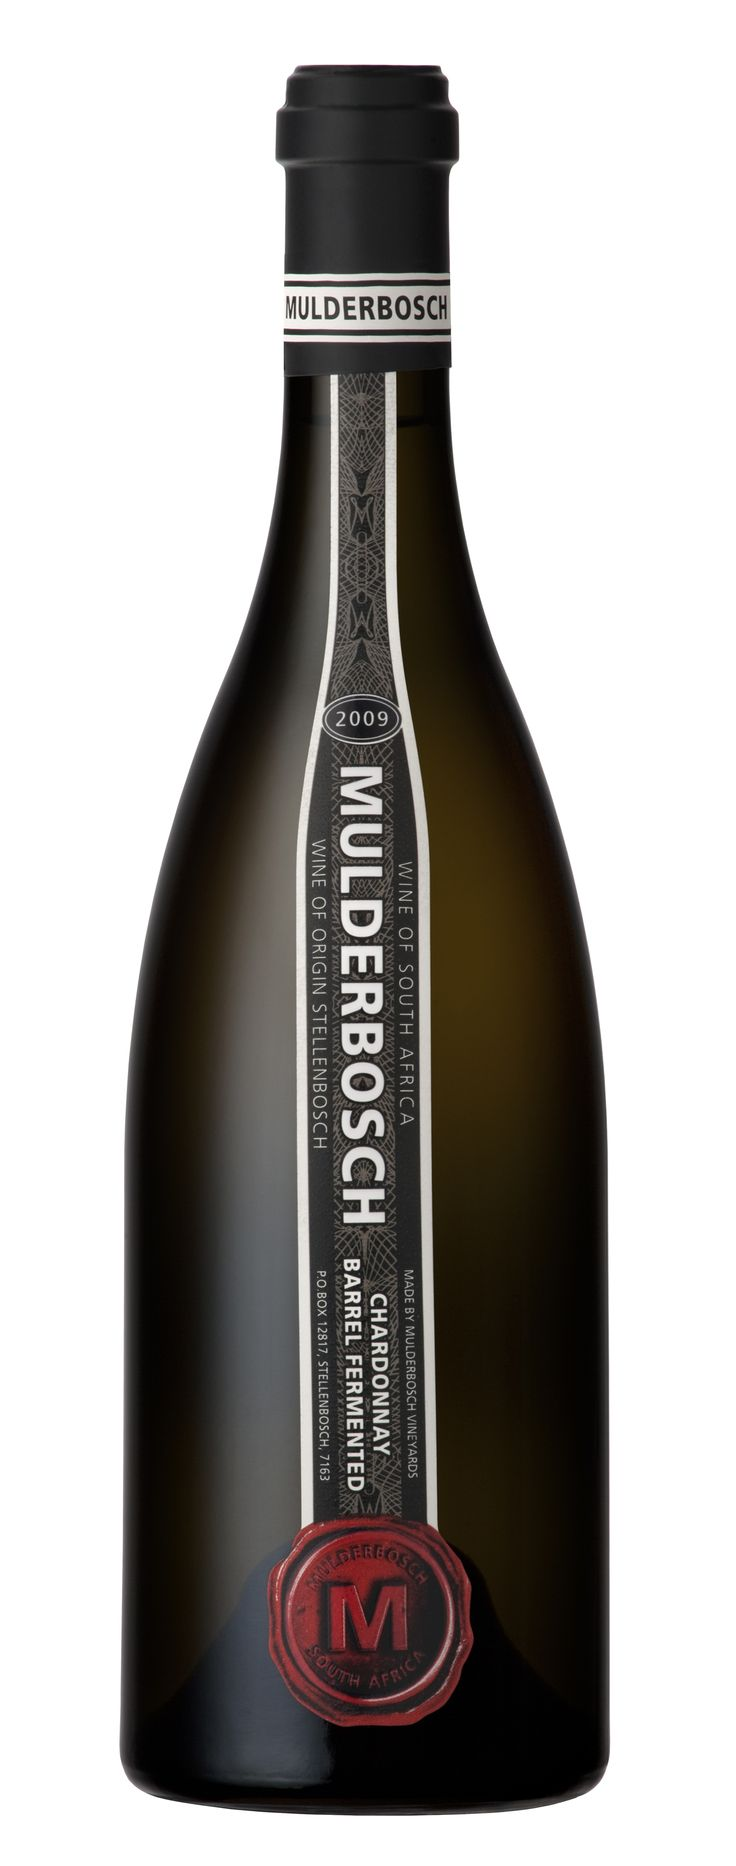 2009 Mulderbosch Barrel Fermented Chardonnay scores 84 points and 5 stars in value. #wine #SouthAfrica